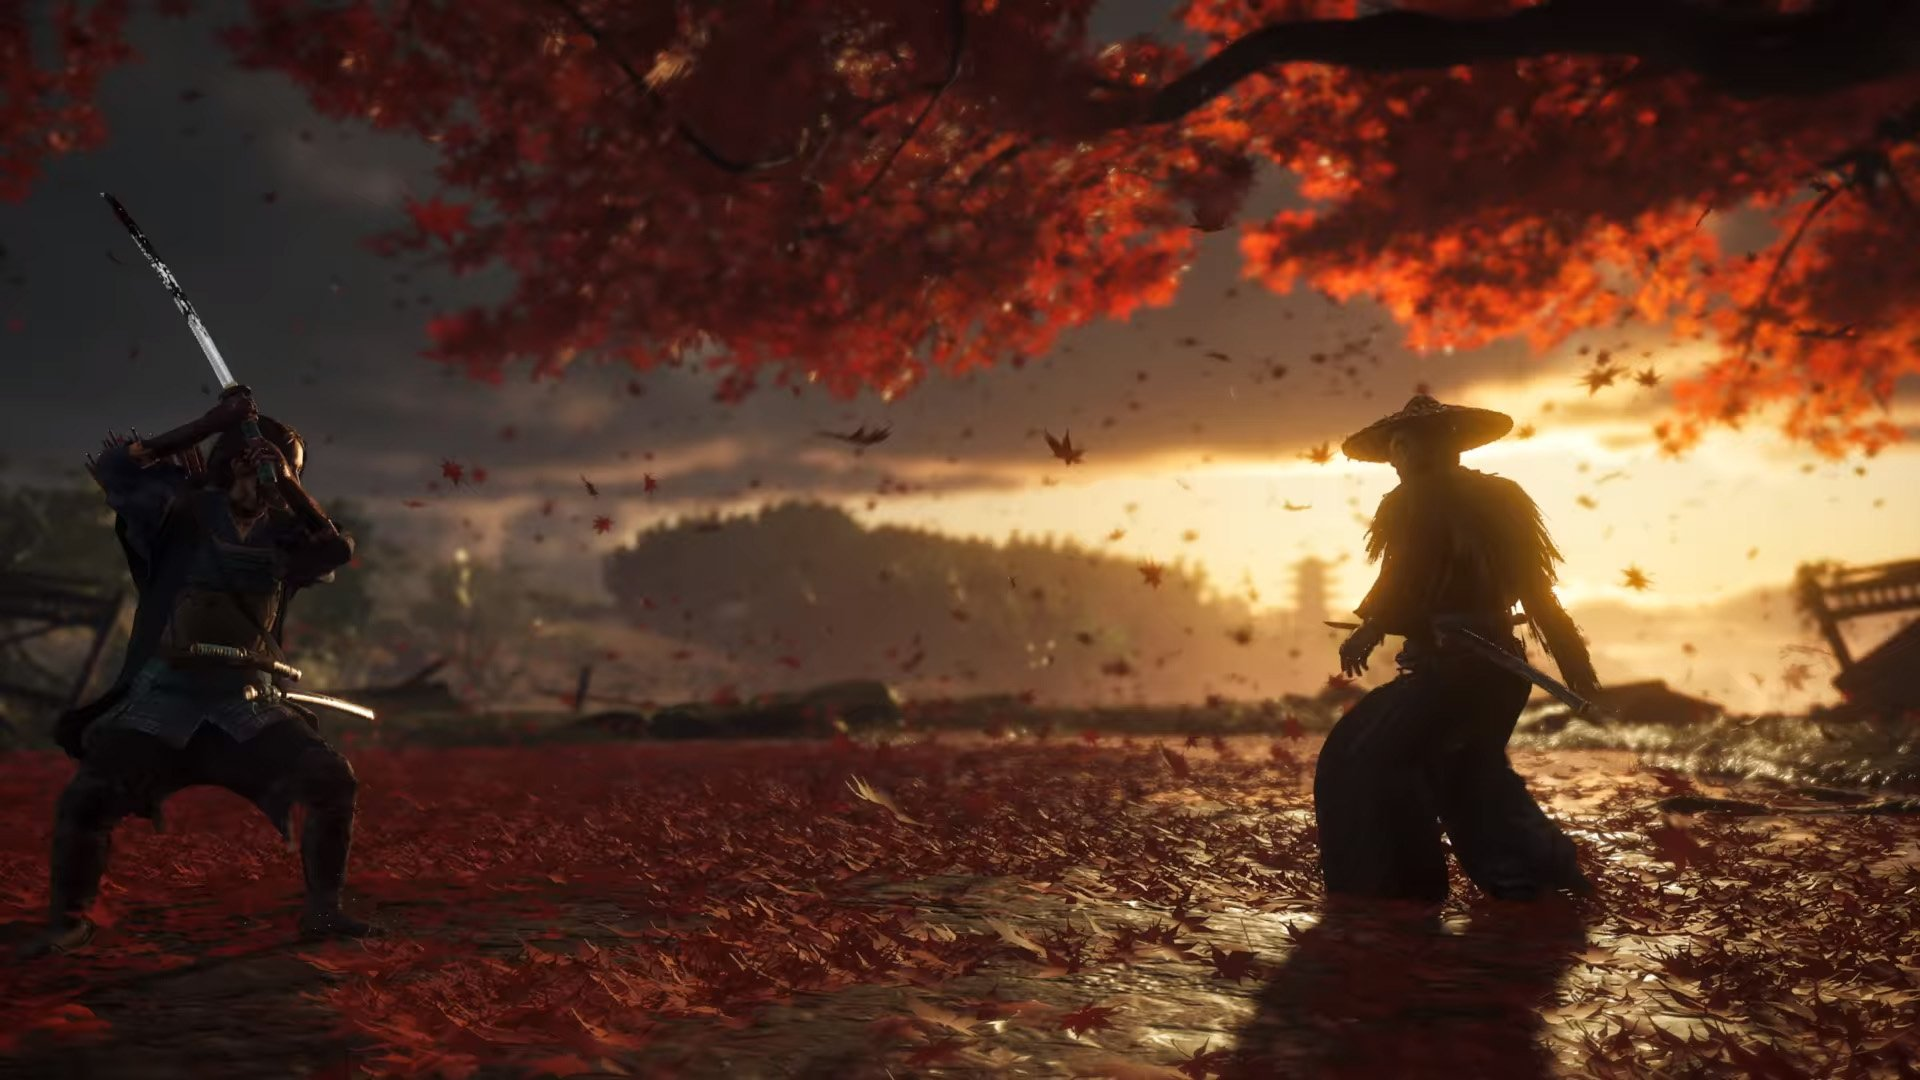 ghost of tsushima ps4 release date hype poll.original - Ghost of Tsushima Pays a Nod to the Samurai Film Genre